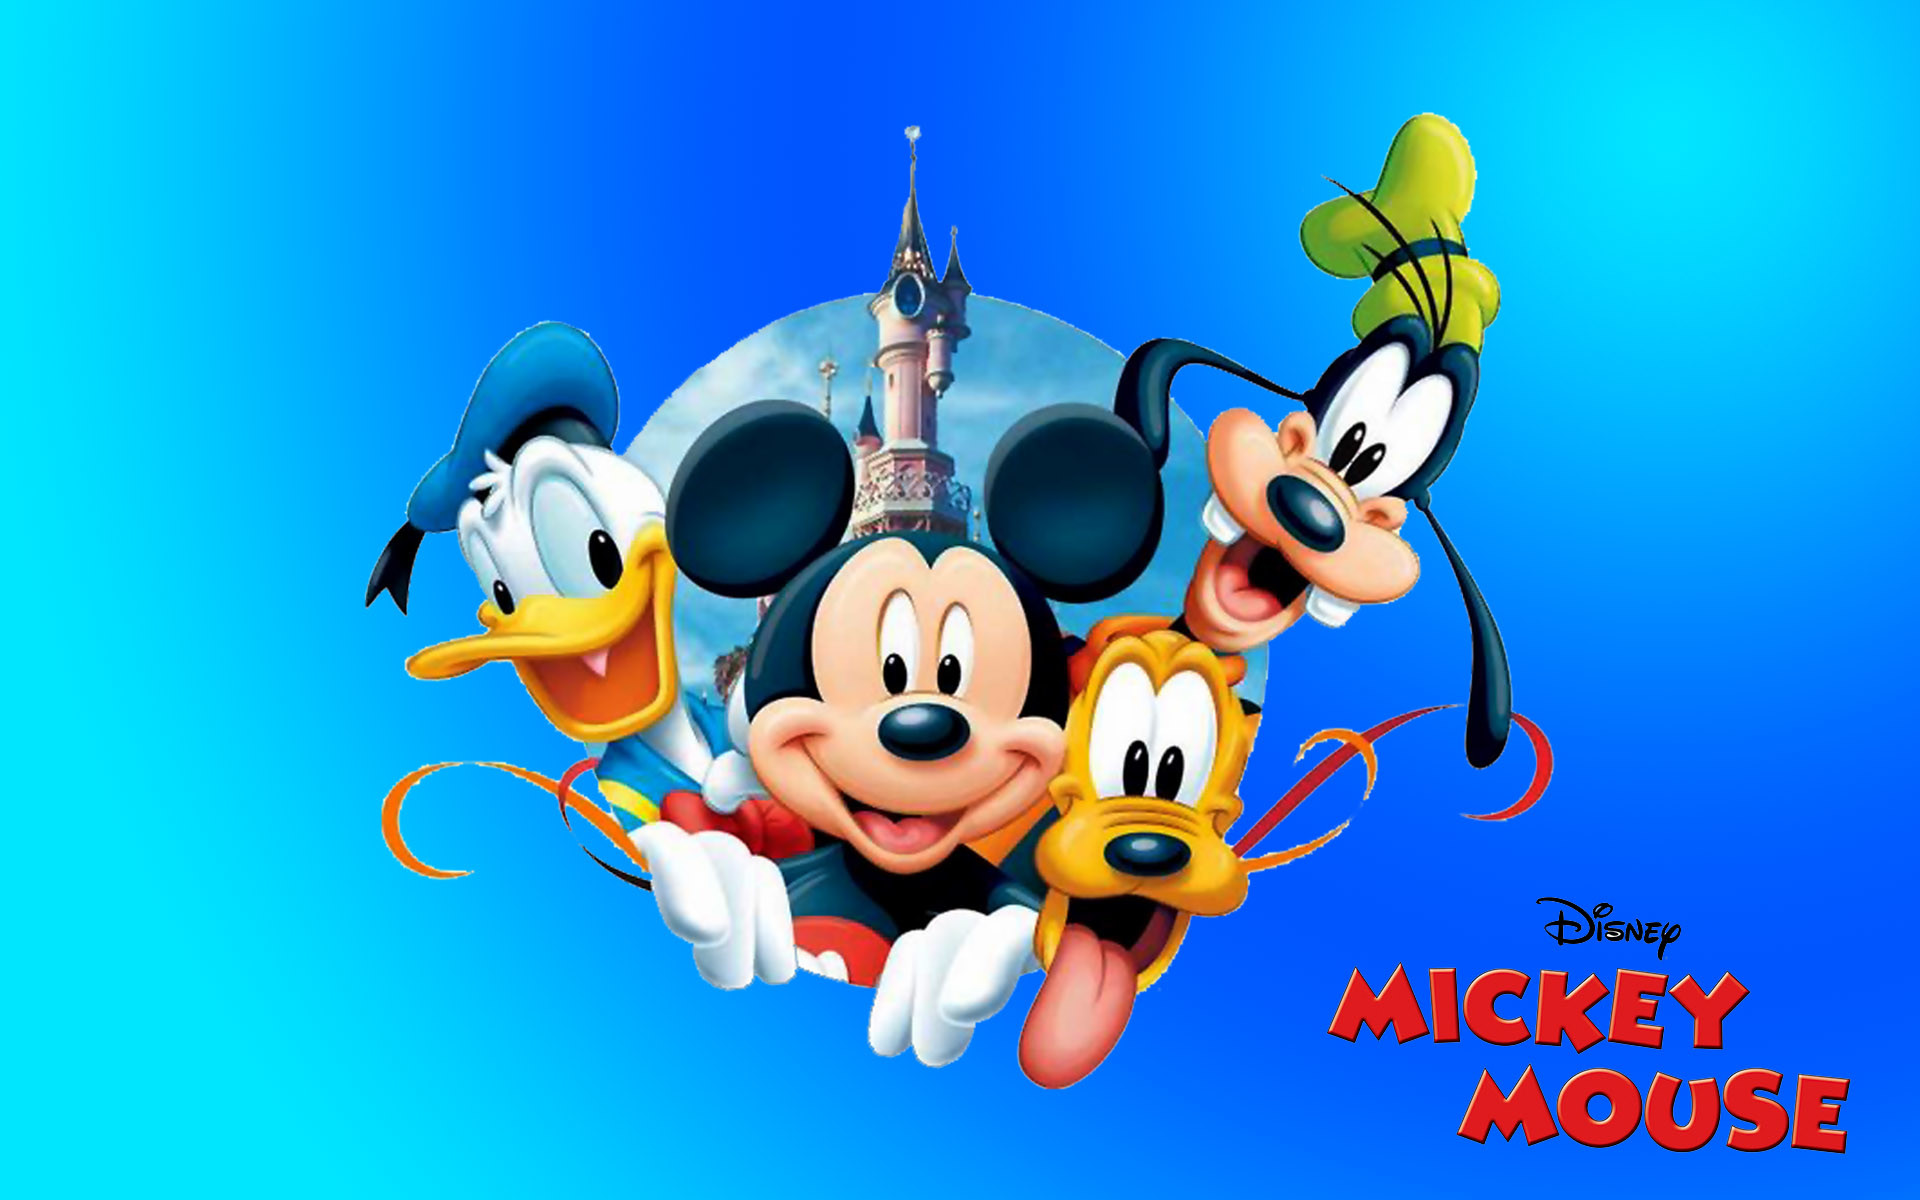 … mickey mouse donald duck pluto and goofy new hd desktop wallpaper …